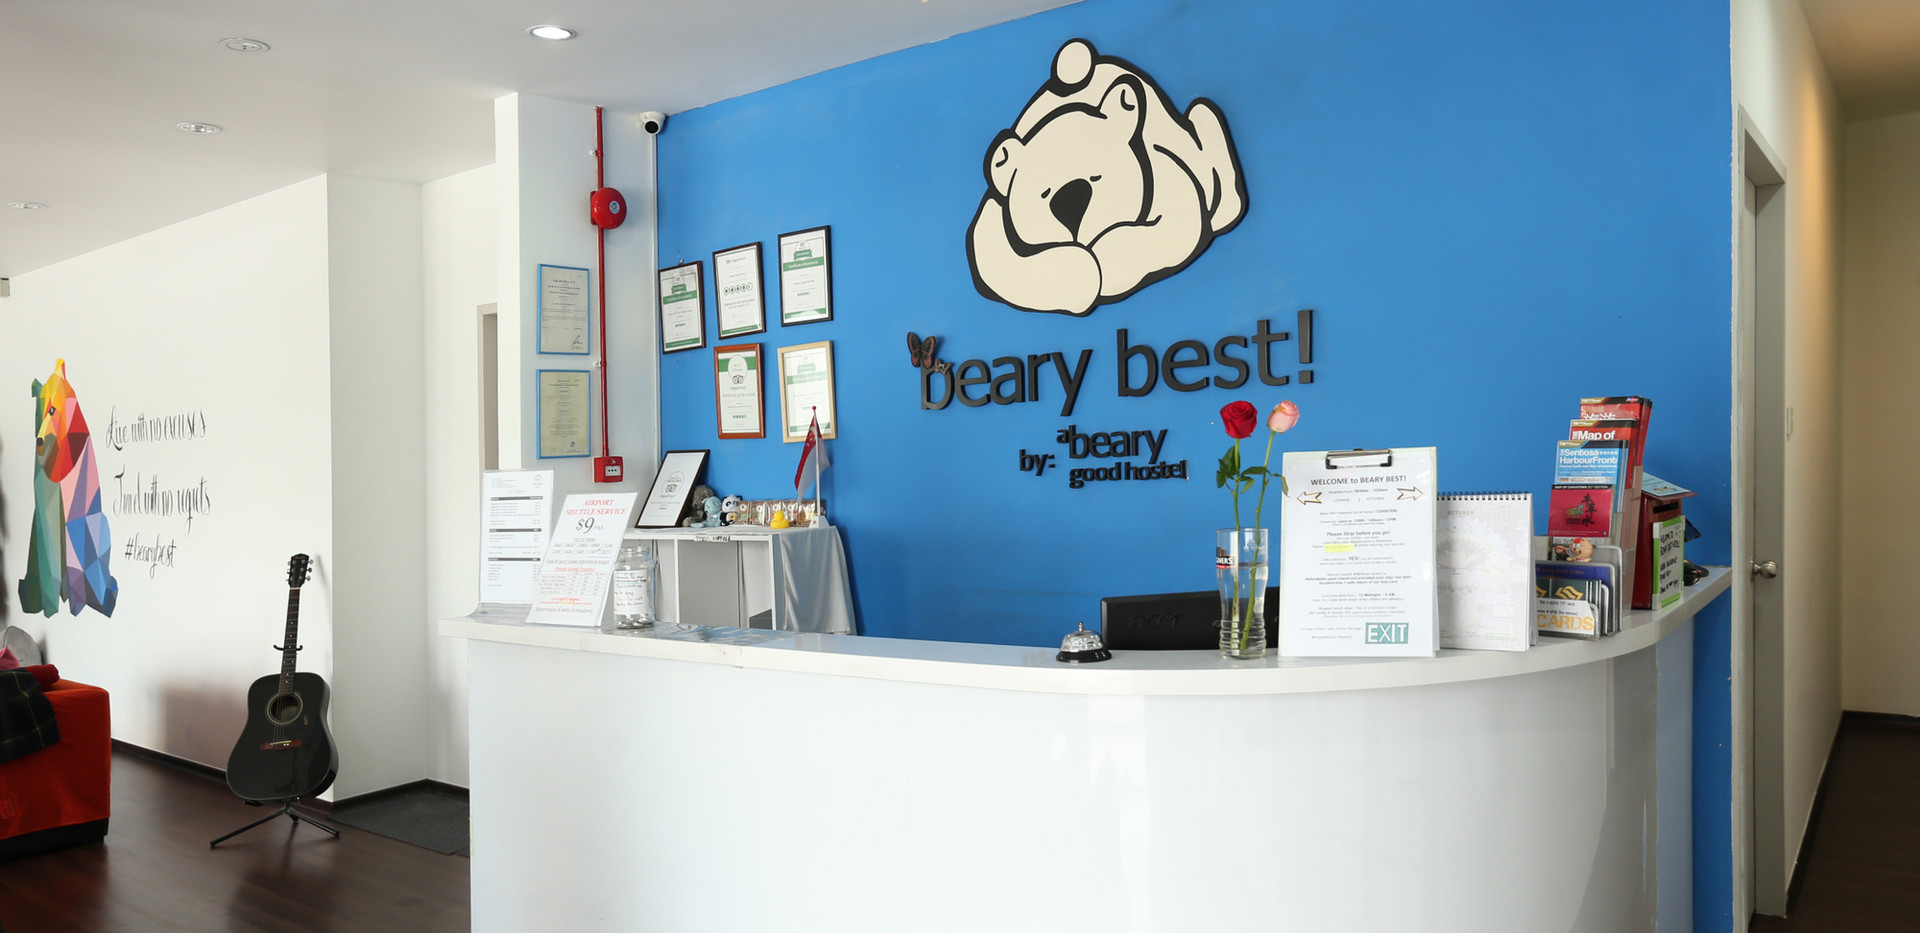 Beary best 24 hours reception and discounted tour bookings